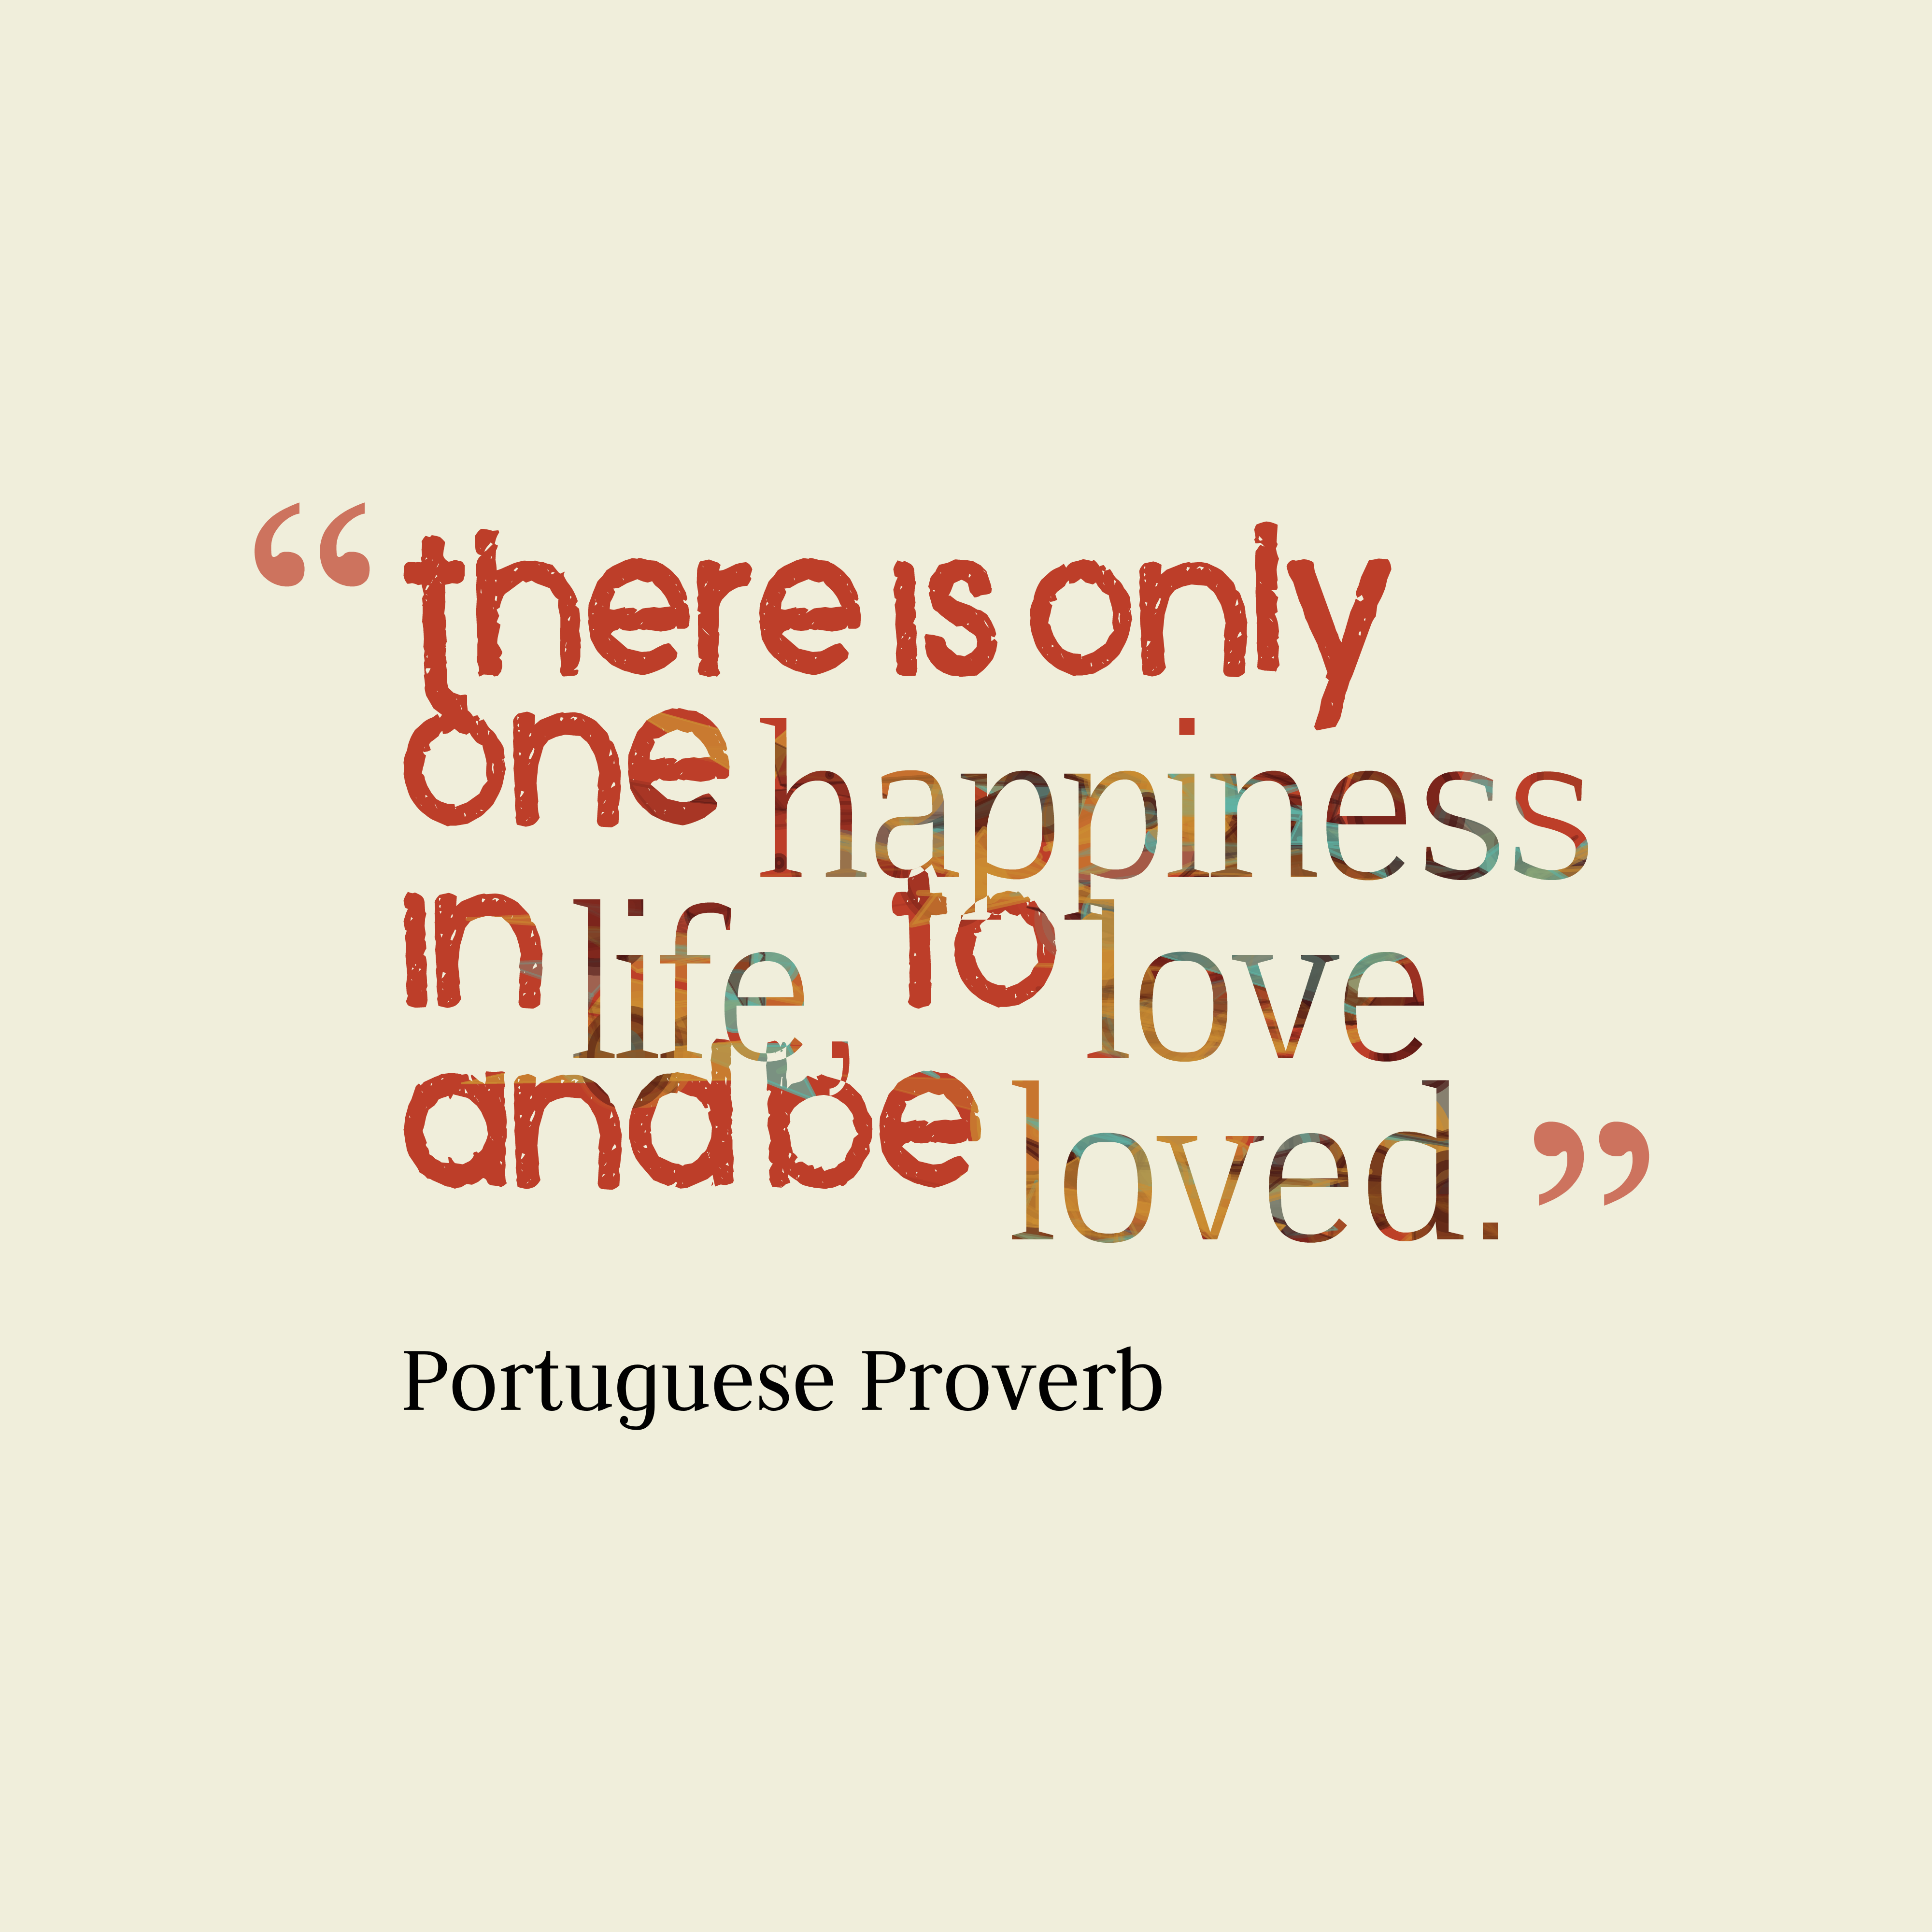 Quotes image of There is only one happiness in life, to love and be loved.